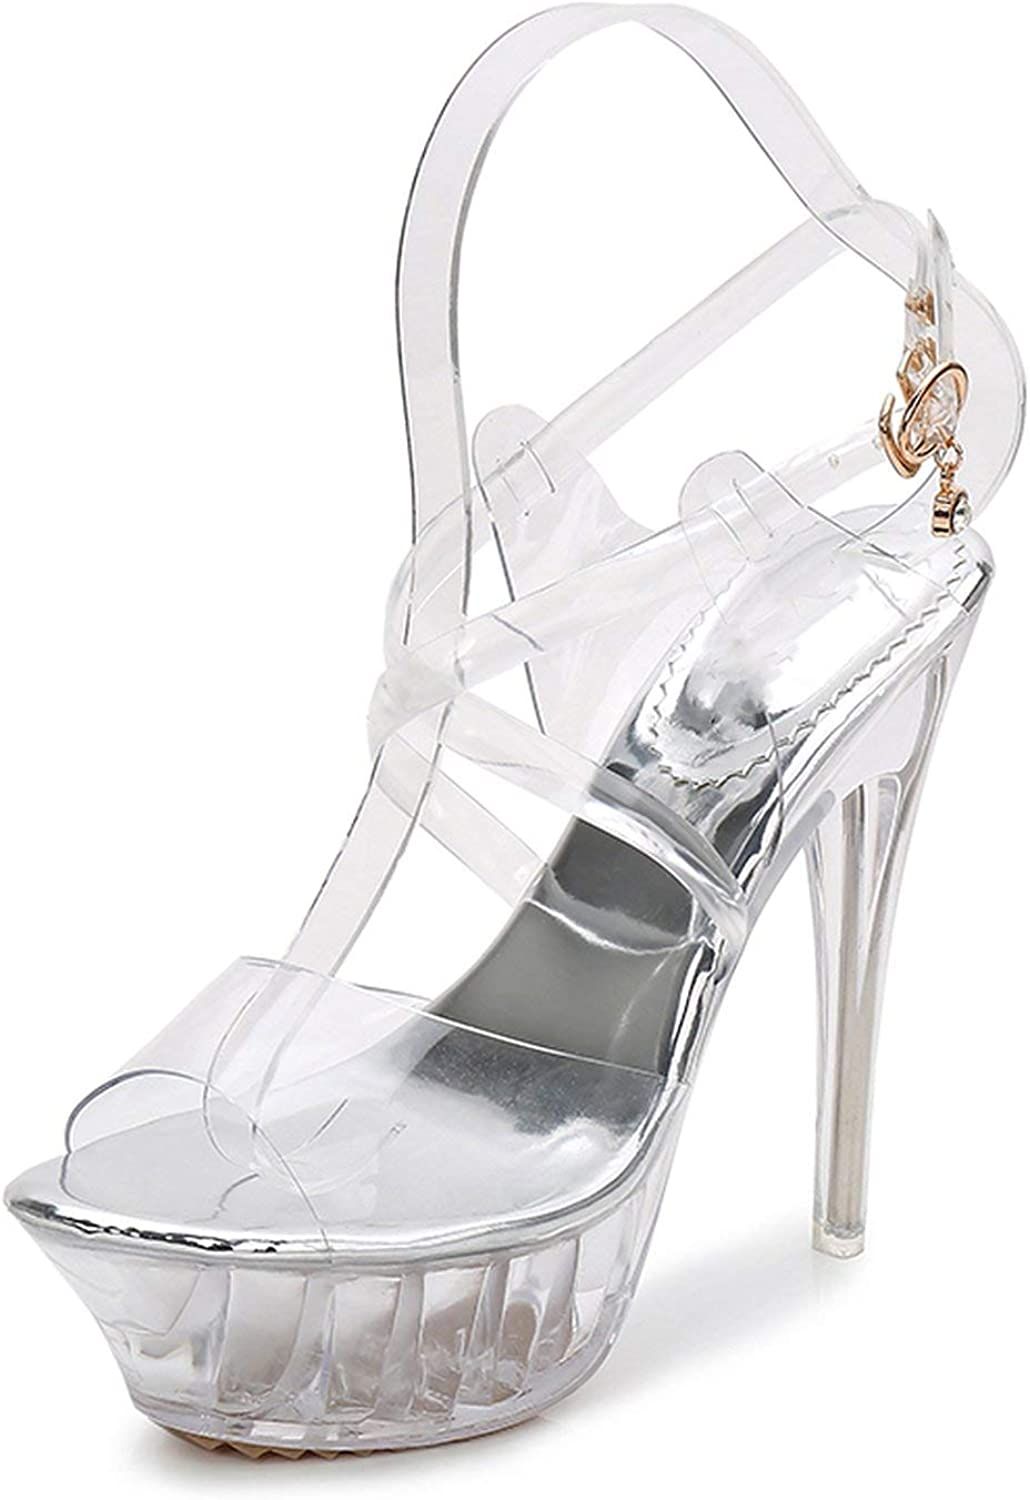 High Heels Womens Sandals Transparent Crystal Heel Model T Stage Sexy Lady Heeled shoes 35-43,14-72,13